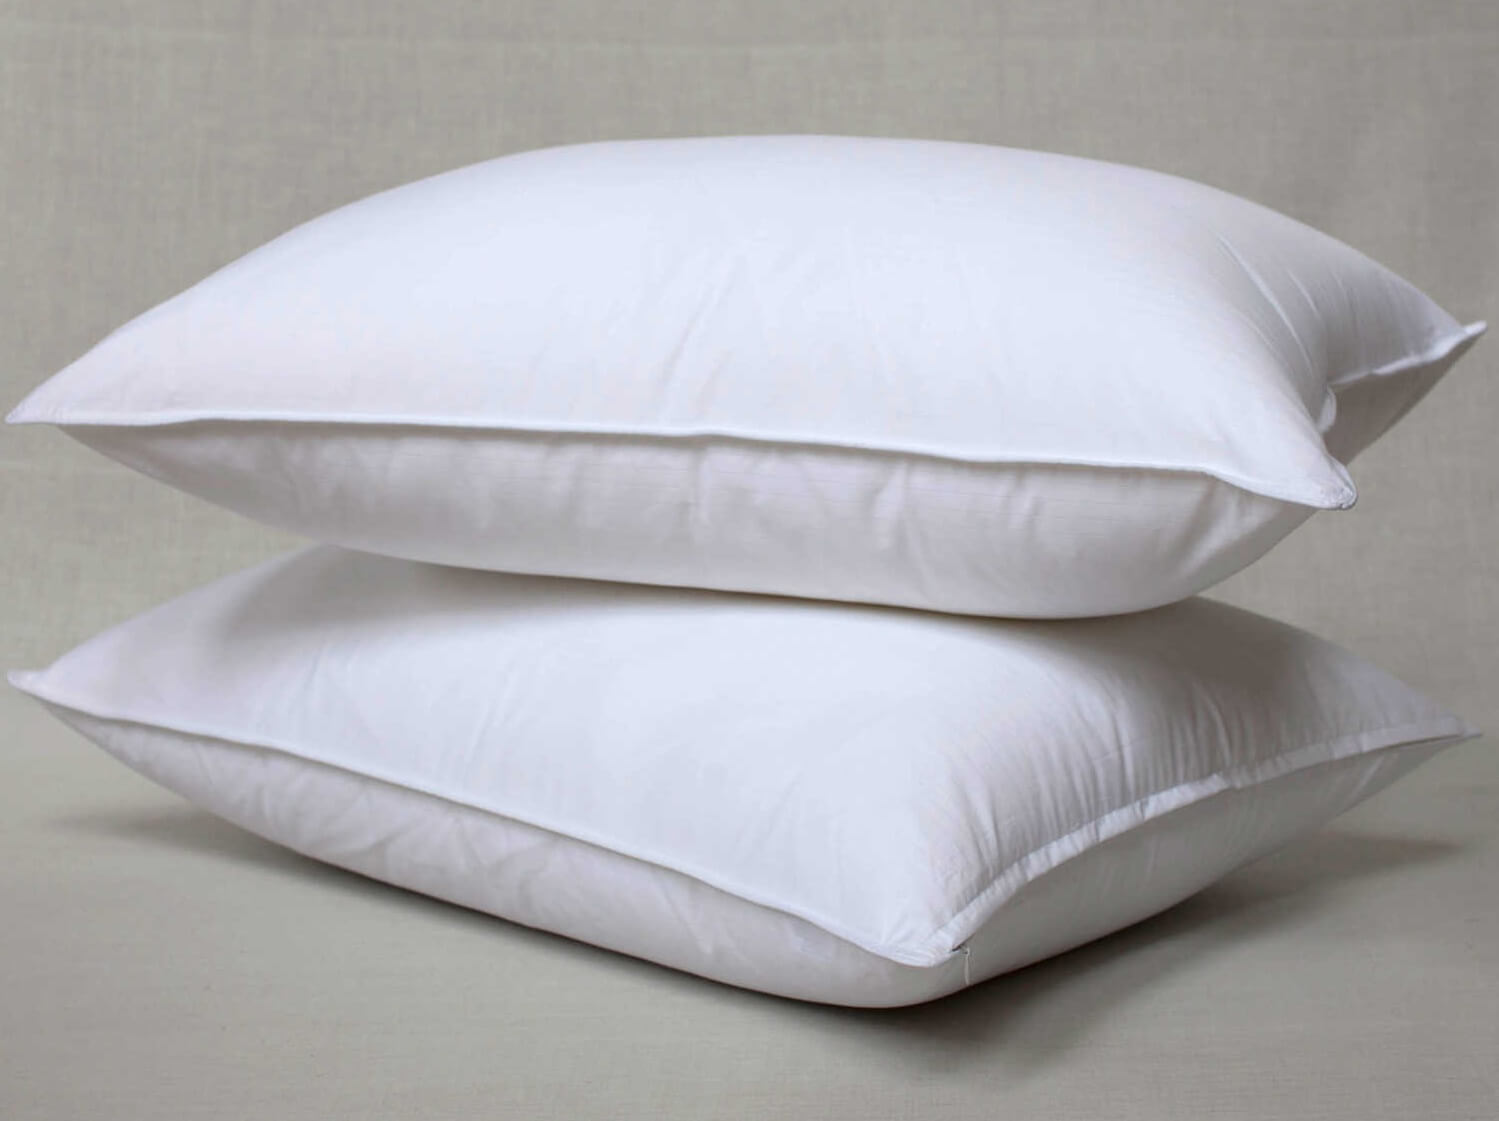 Hypoallergenic Soft Down Pillow by Sealy Posturepedic